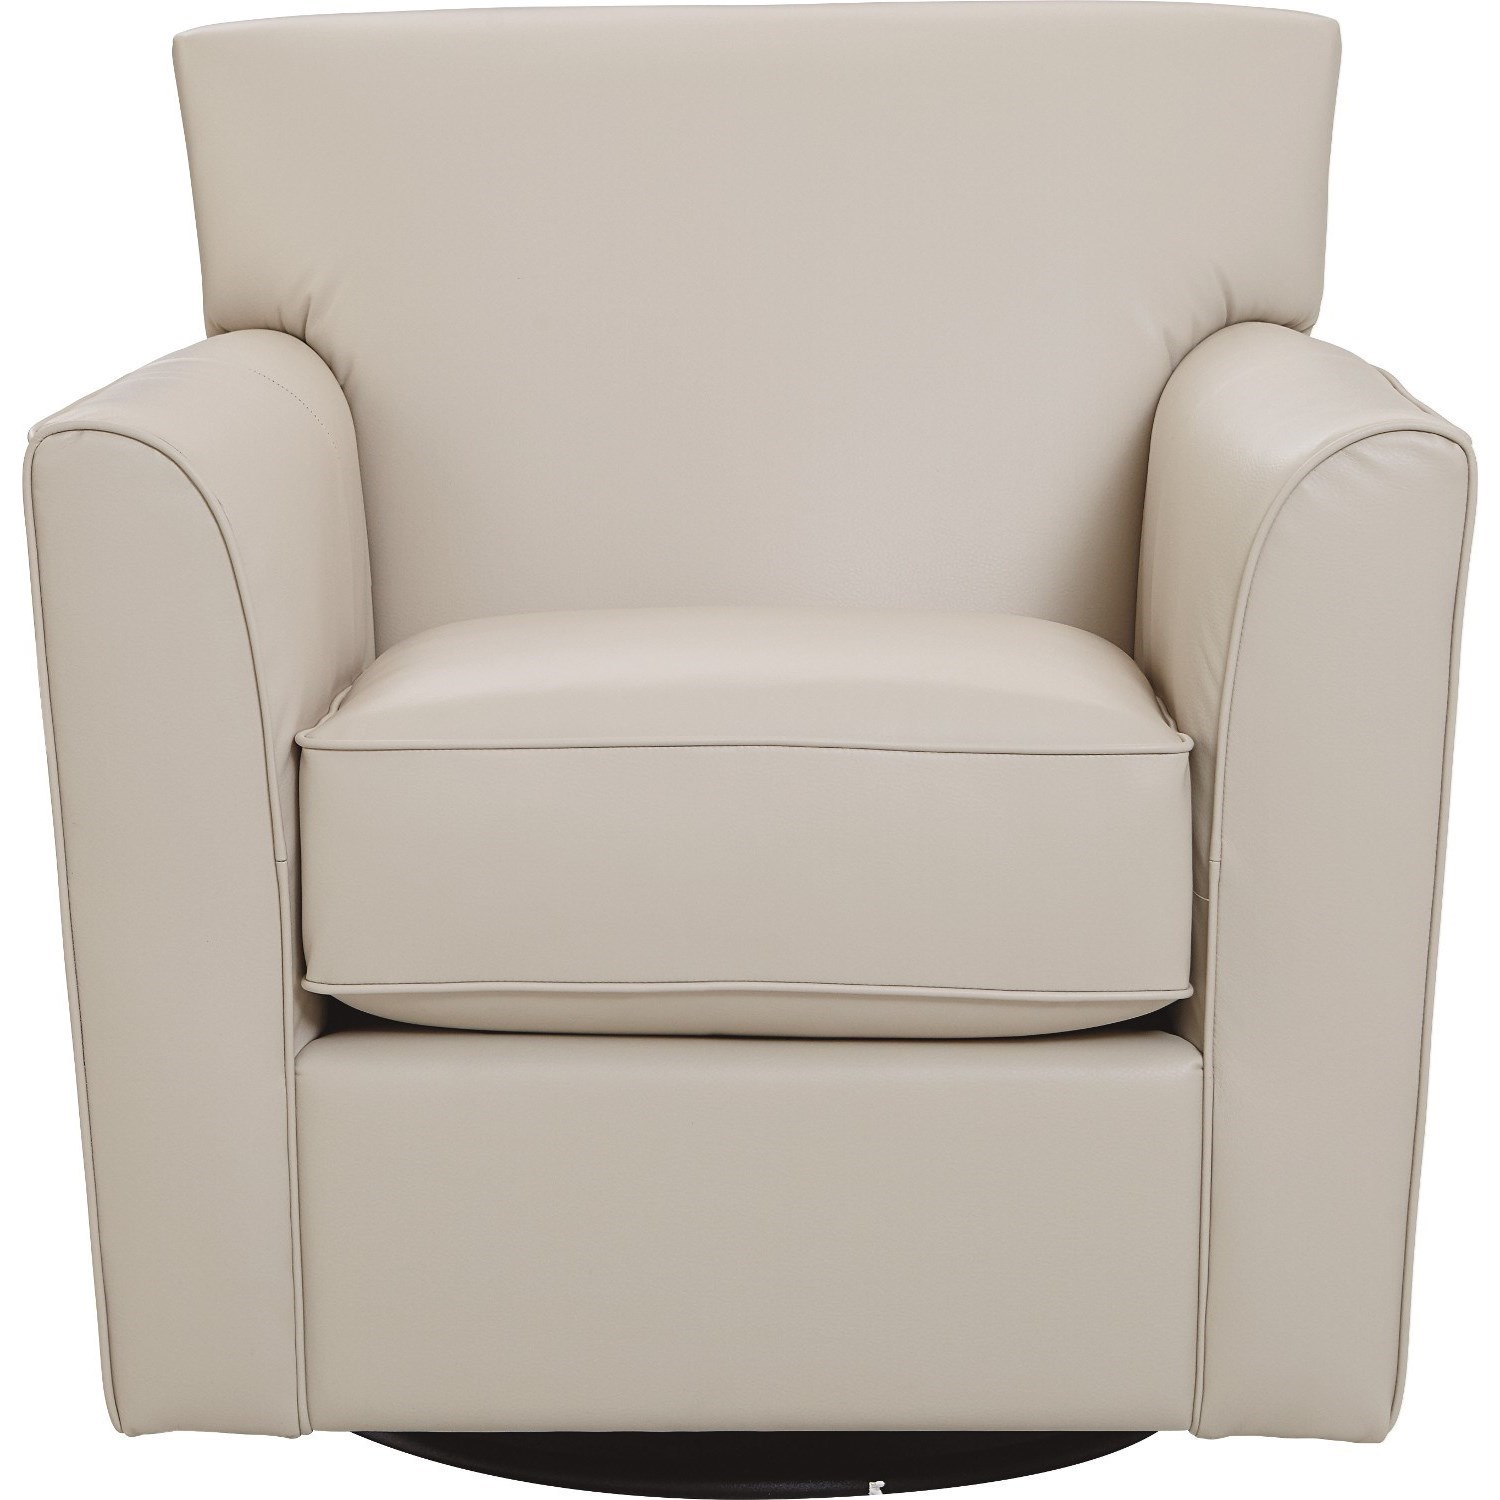 Lazy Boy Swivel Chair Chairs Allegra Swivel Glider With Flared Arms By La Z Boy At Reid S Furniture